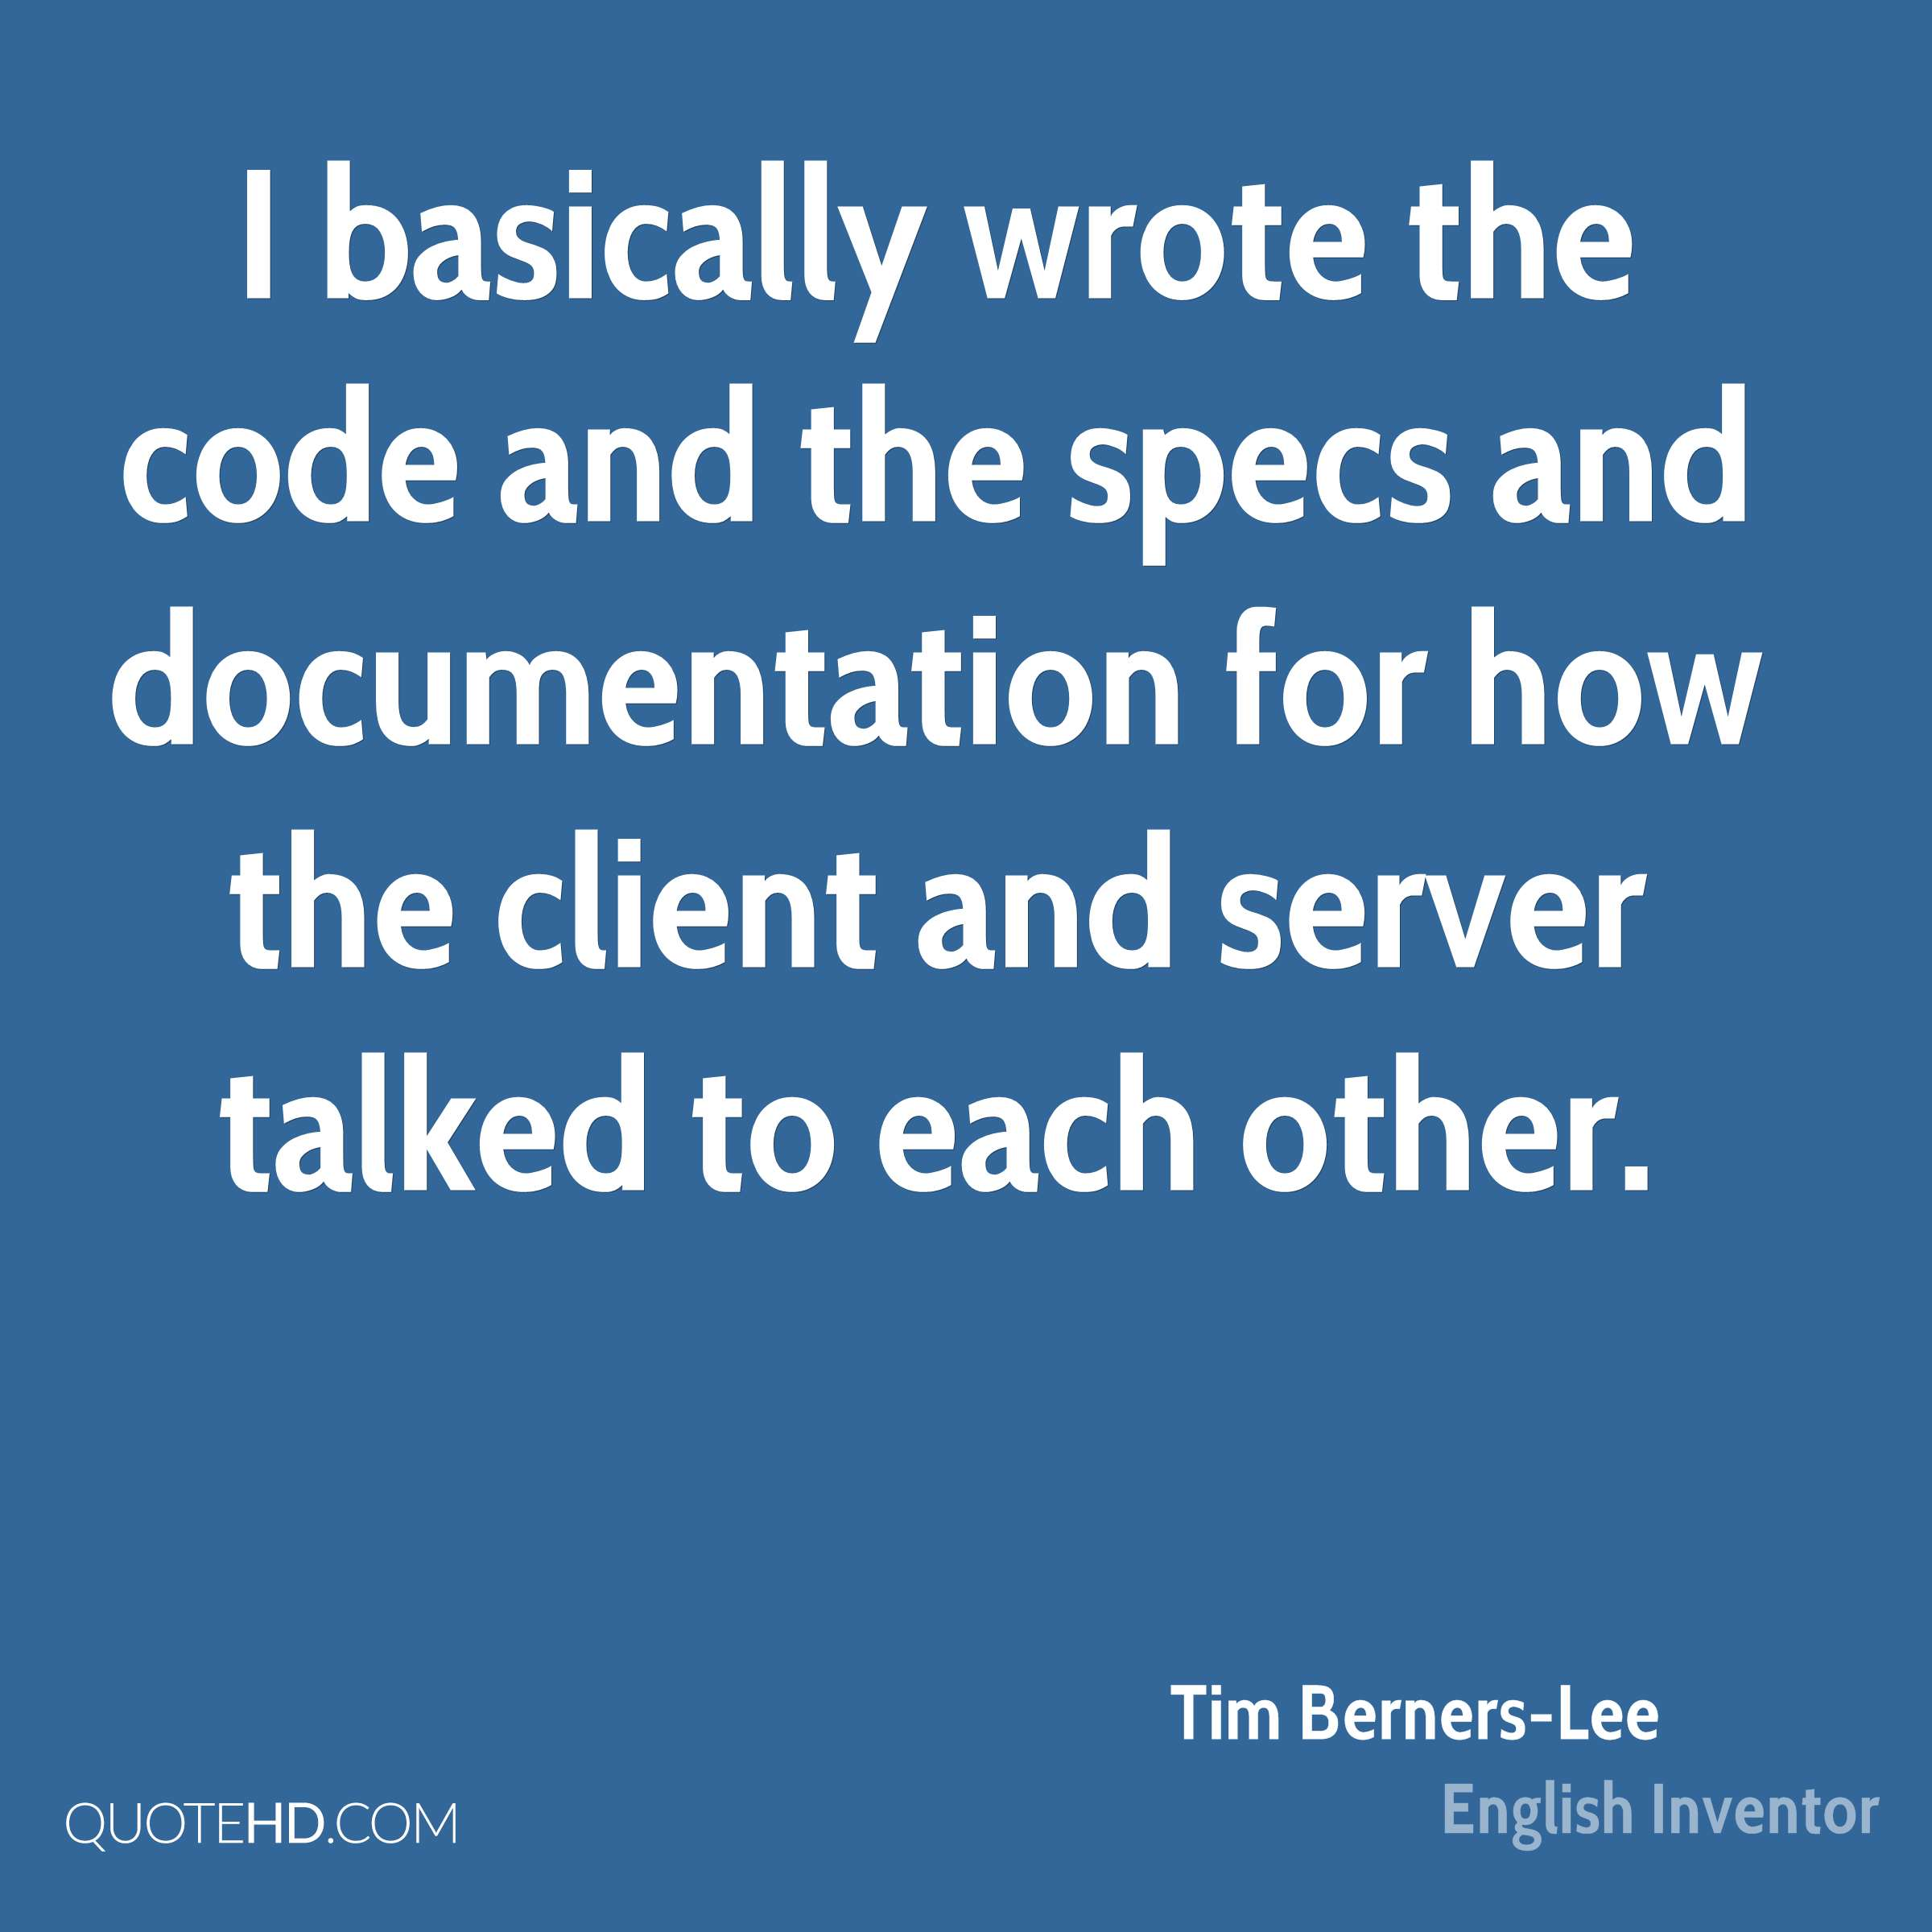 I basically wrote the code and the specs and documentation for how the client and server talked to each other.